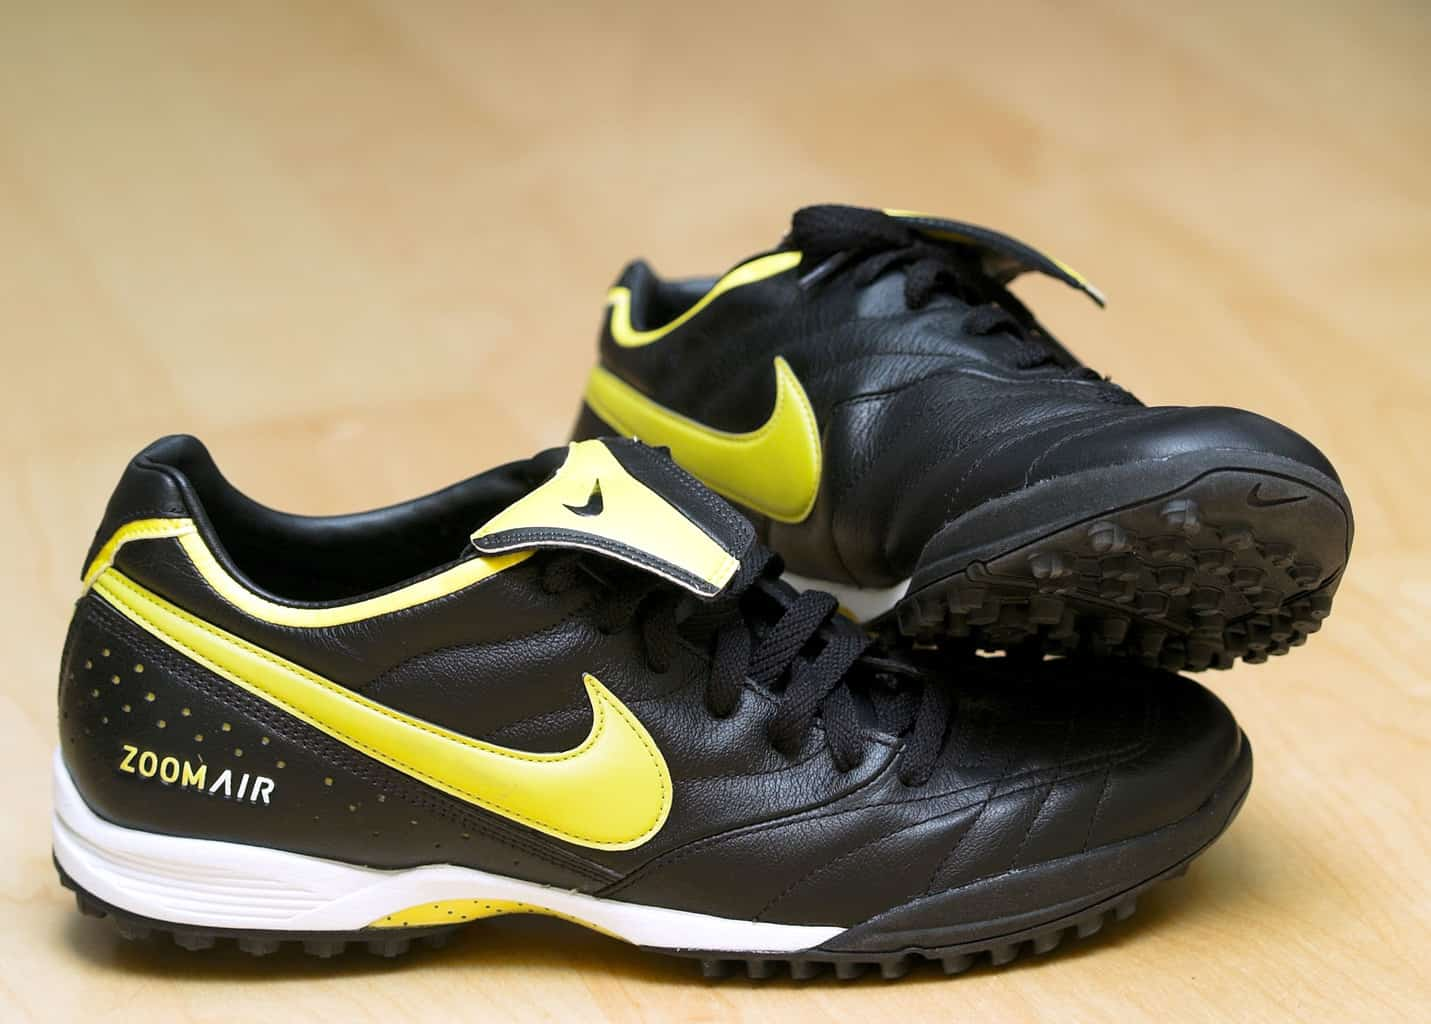 Black and gold Nike indoor soccer shoes